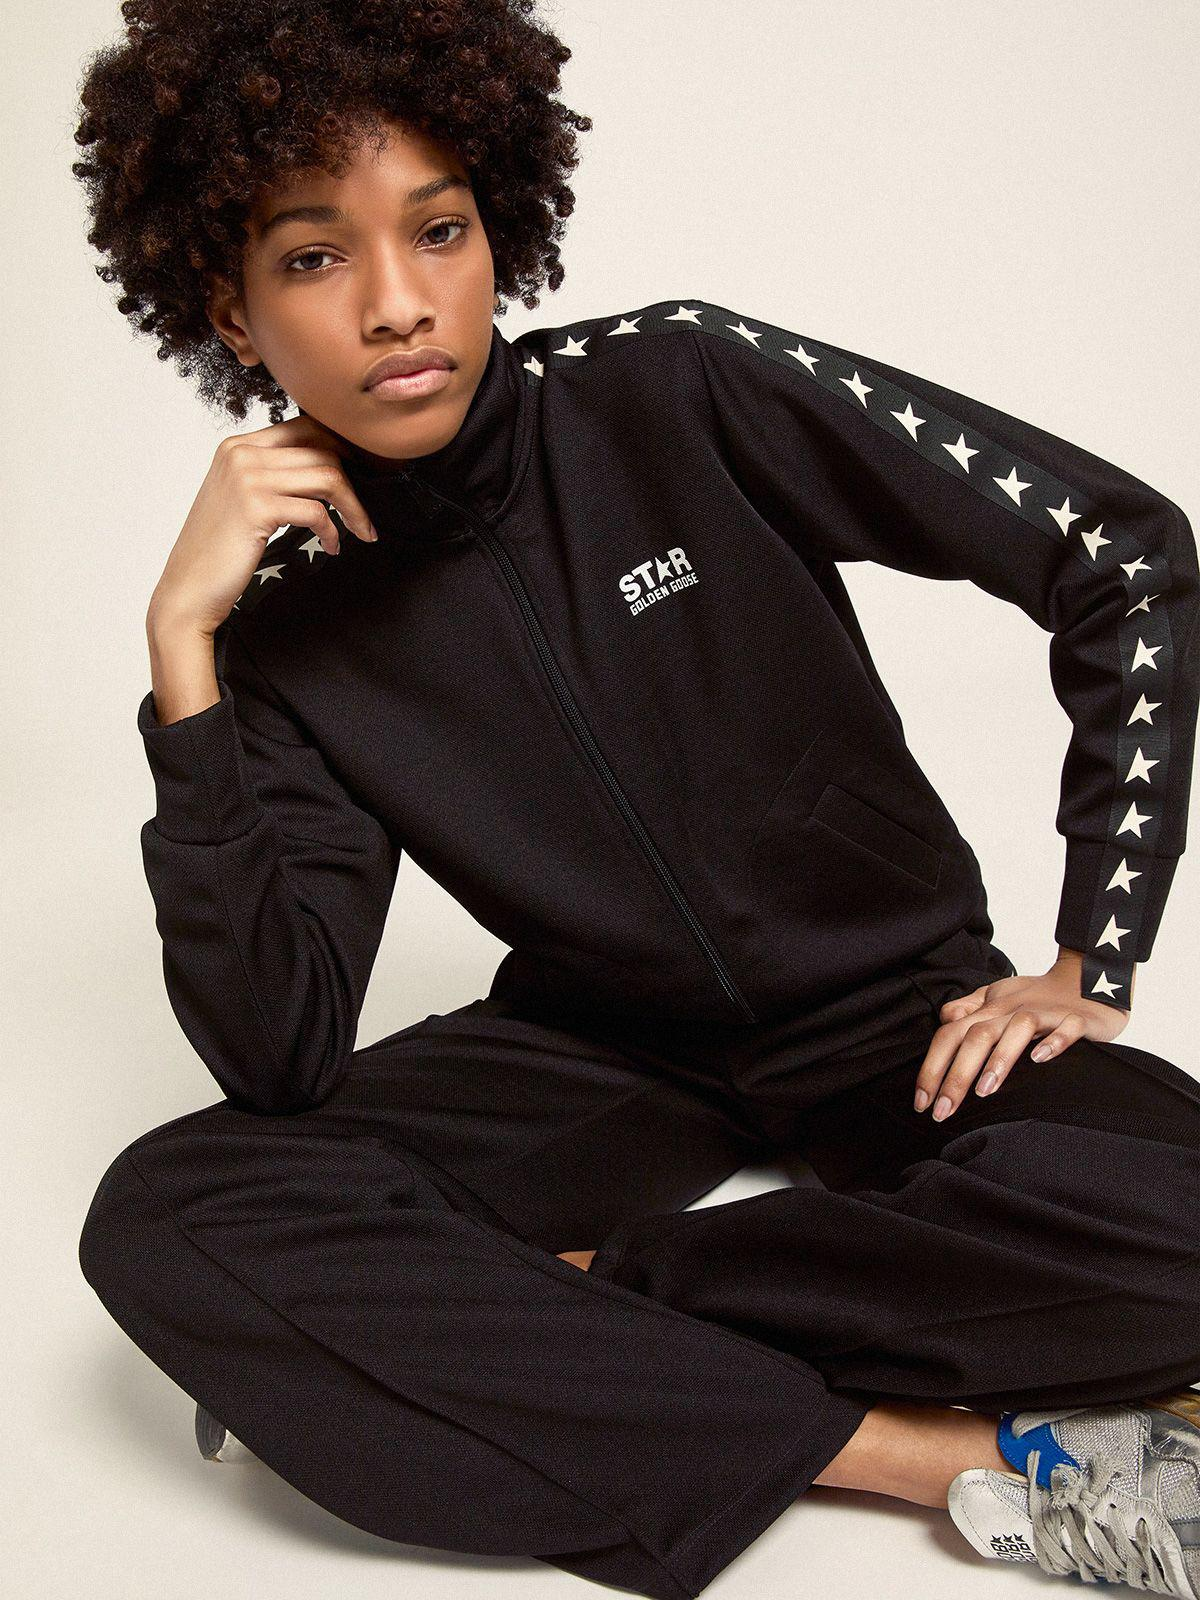 Black Dorotea Star Collection jogging pants with white stars on the sides 2